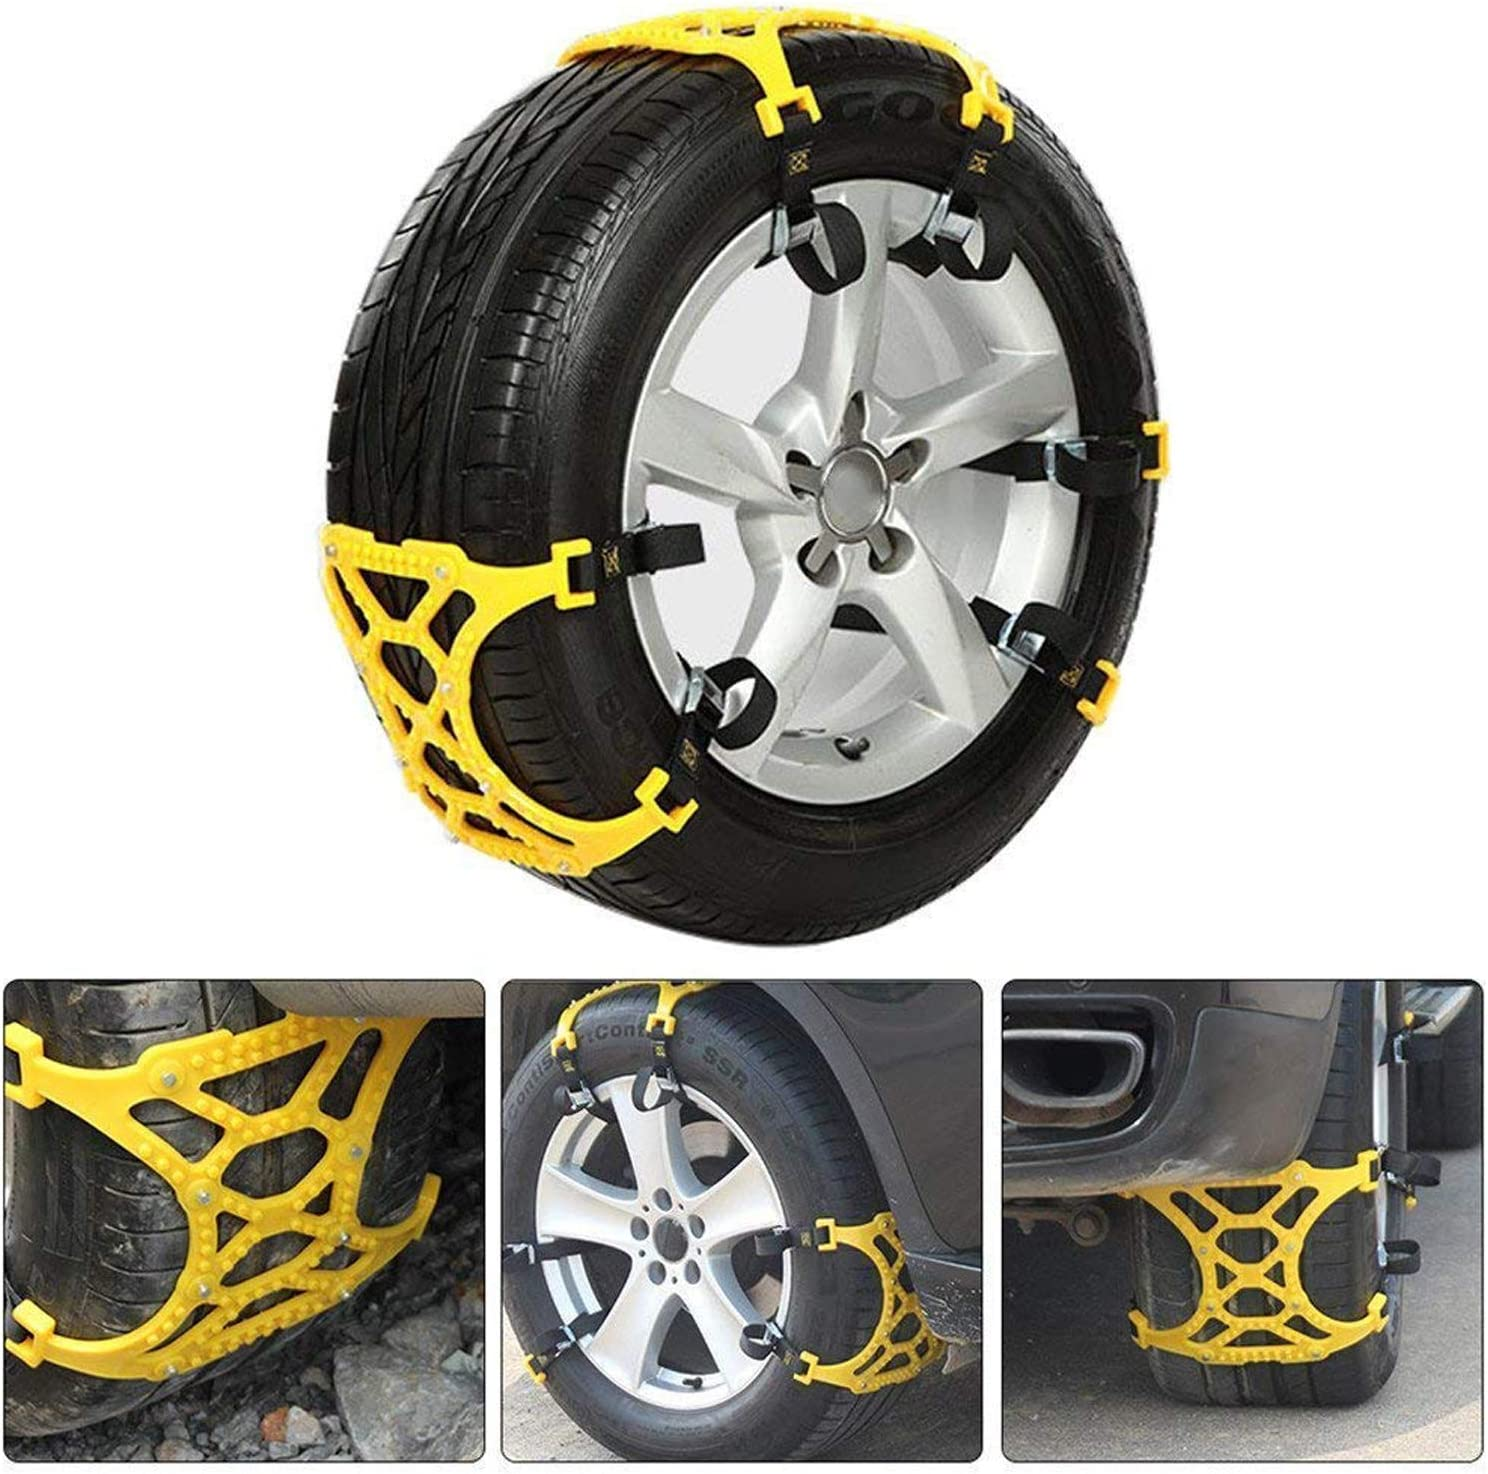 Arespark Car Snow Chains 6pcs Anti Easy to Install Most Cars Tire Chains Passenger Cars Slip Tire Chain for SUV